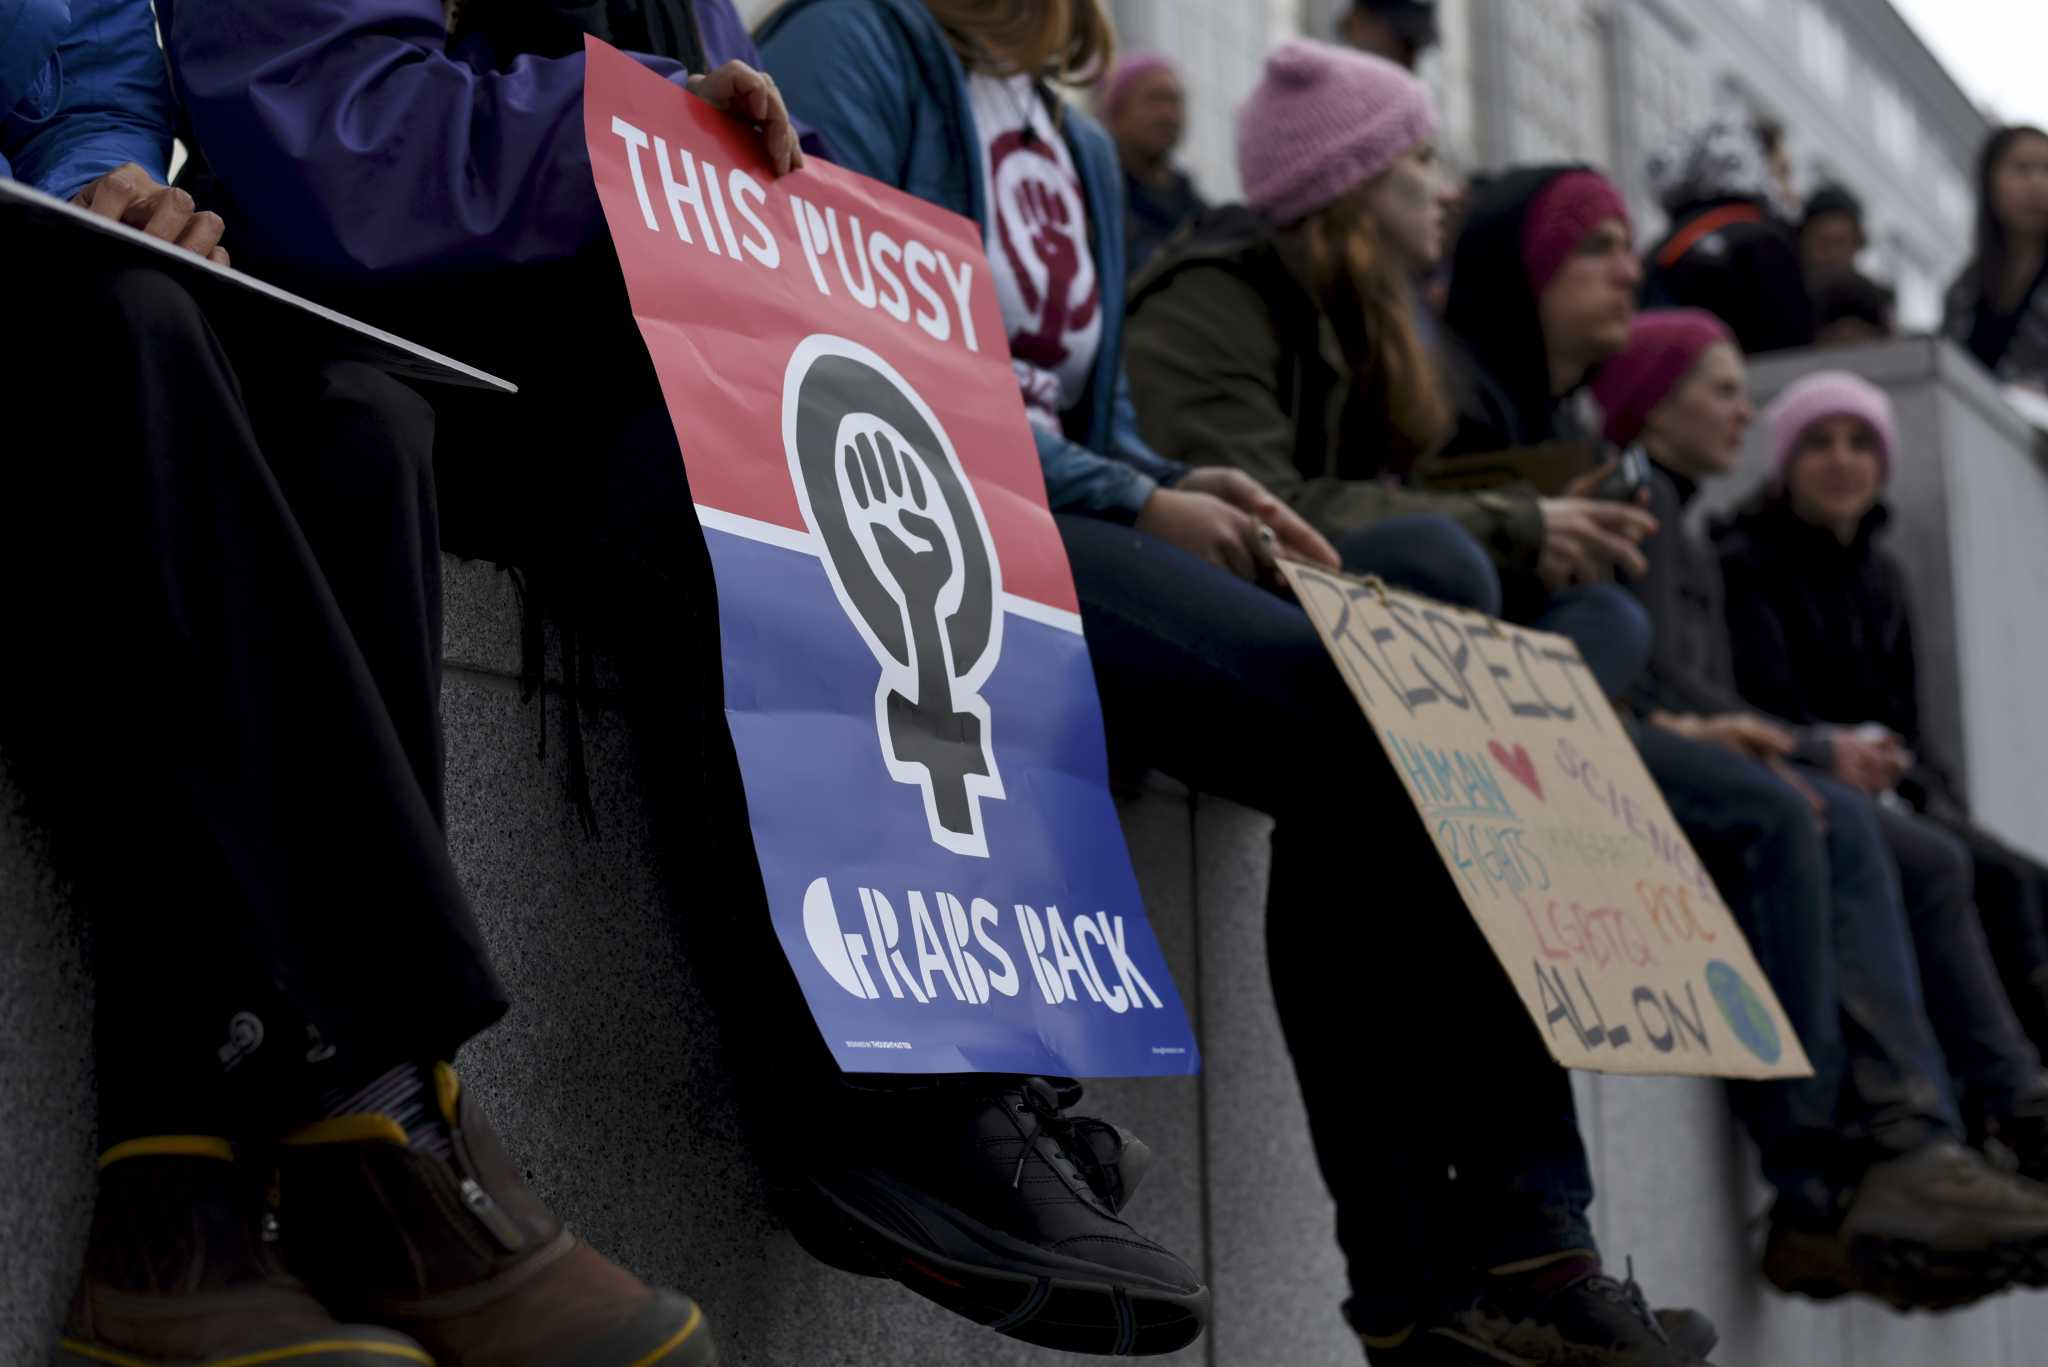 Protesters hold signs on the day of the Women's March on Washington: San Francisco on Saturday, January 21, 2017 (Lauren Hanussak/Xpress)